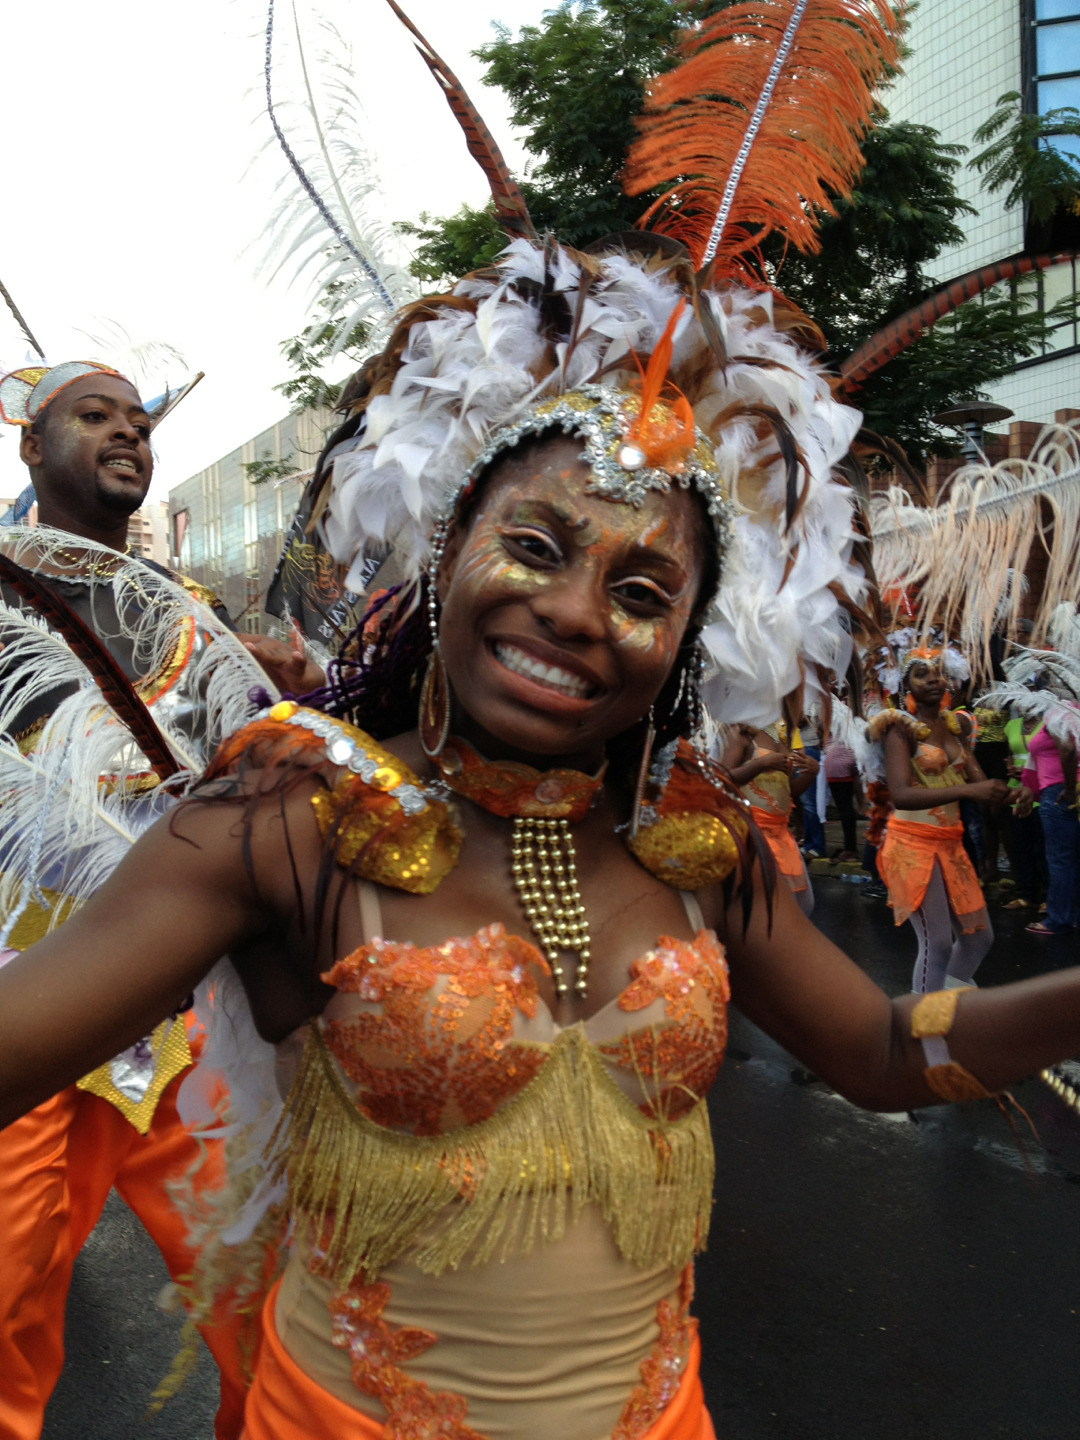 Carnaval de martinique à Fort-de-France